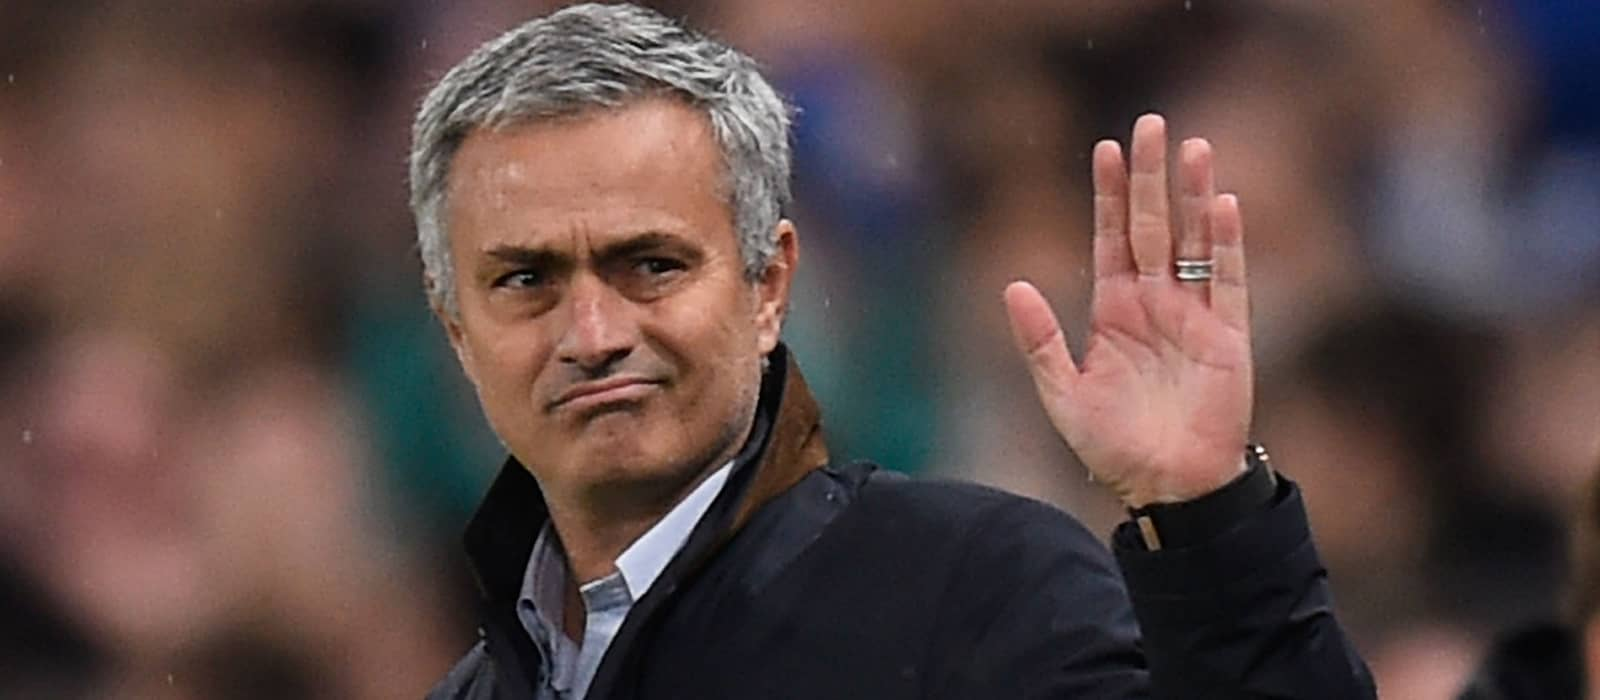 Manchester United fans rattled by Jose Mourinho to Paris Saint-Germain rumours